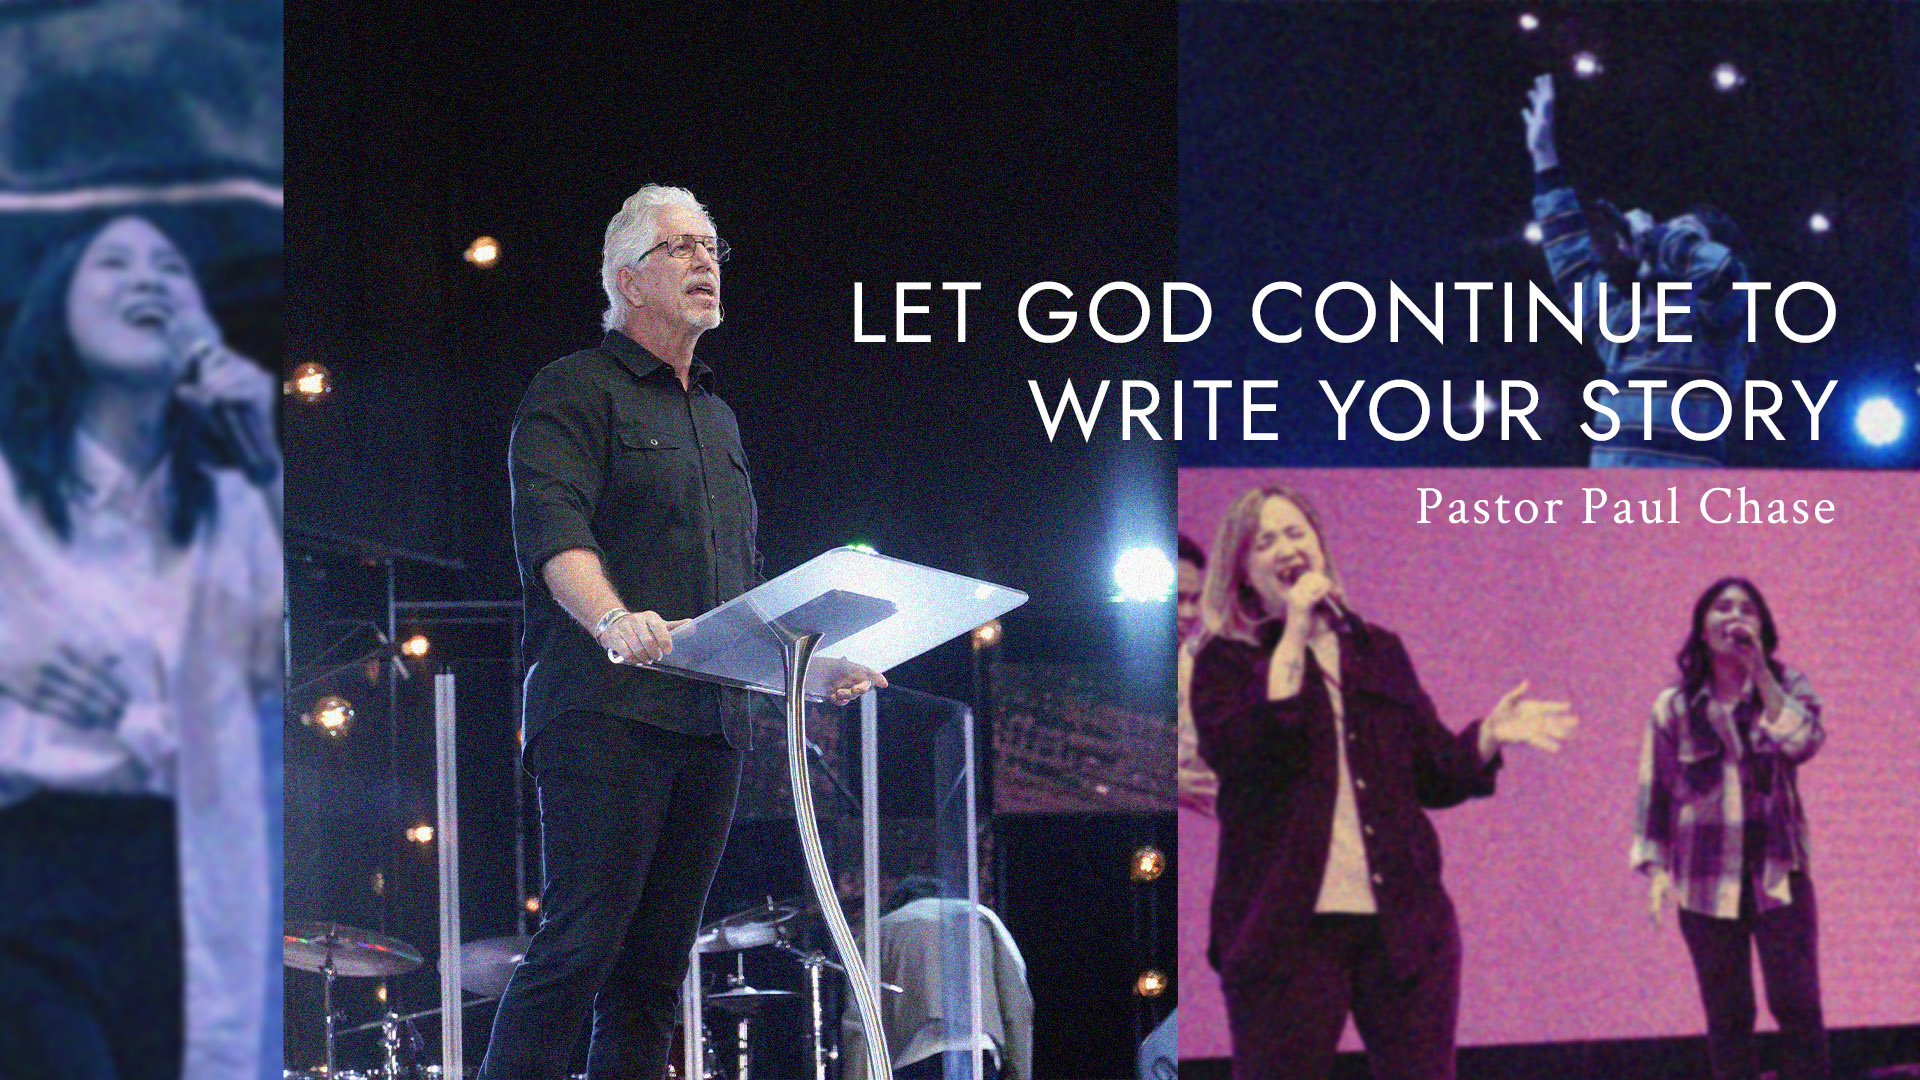 LET GOD CONTINUE TO WRITE YOUR STORY Image